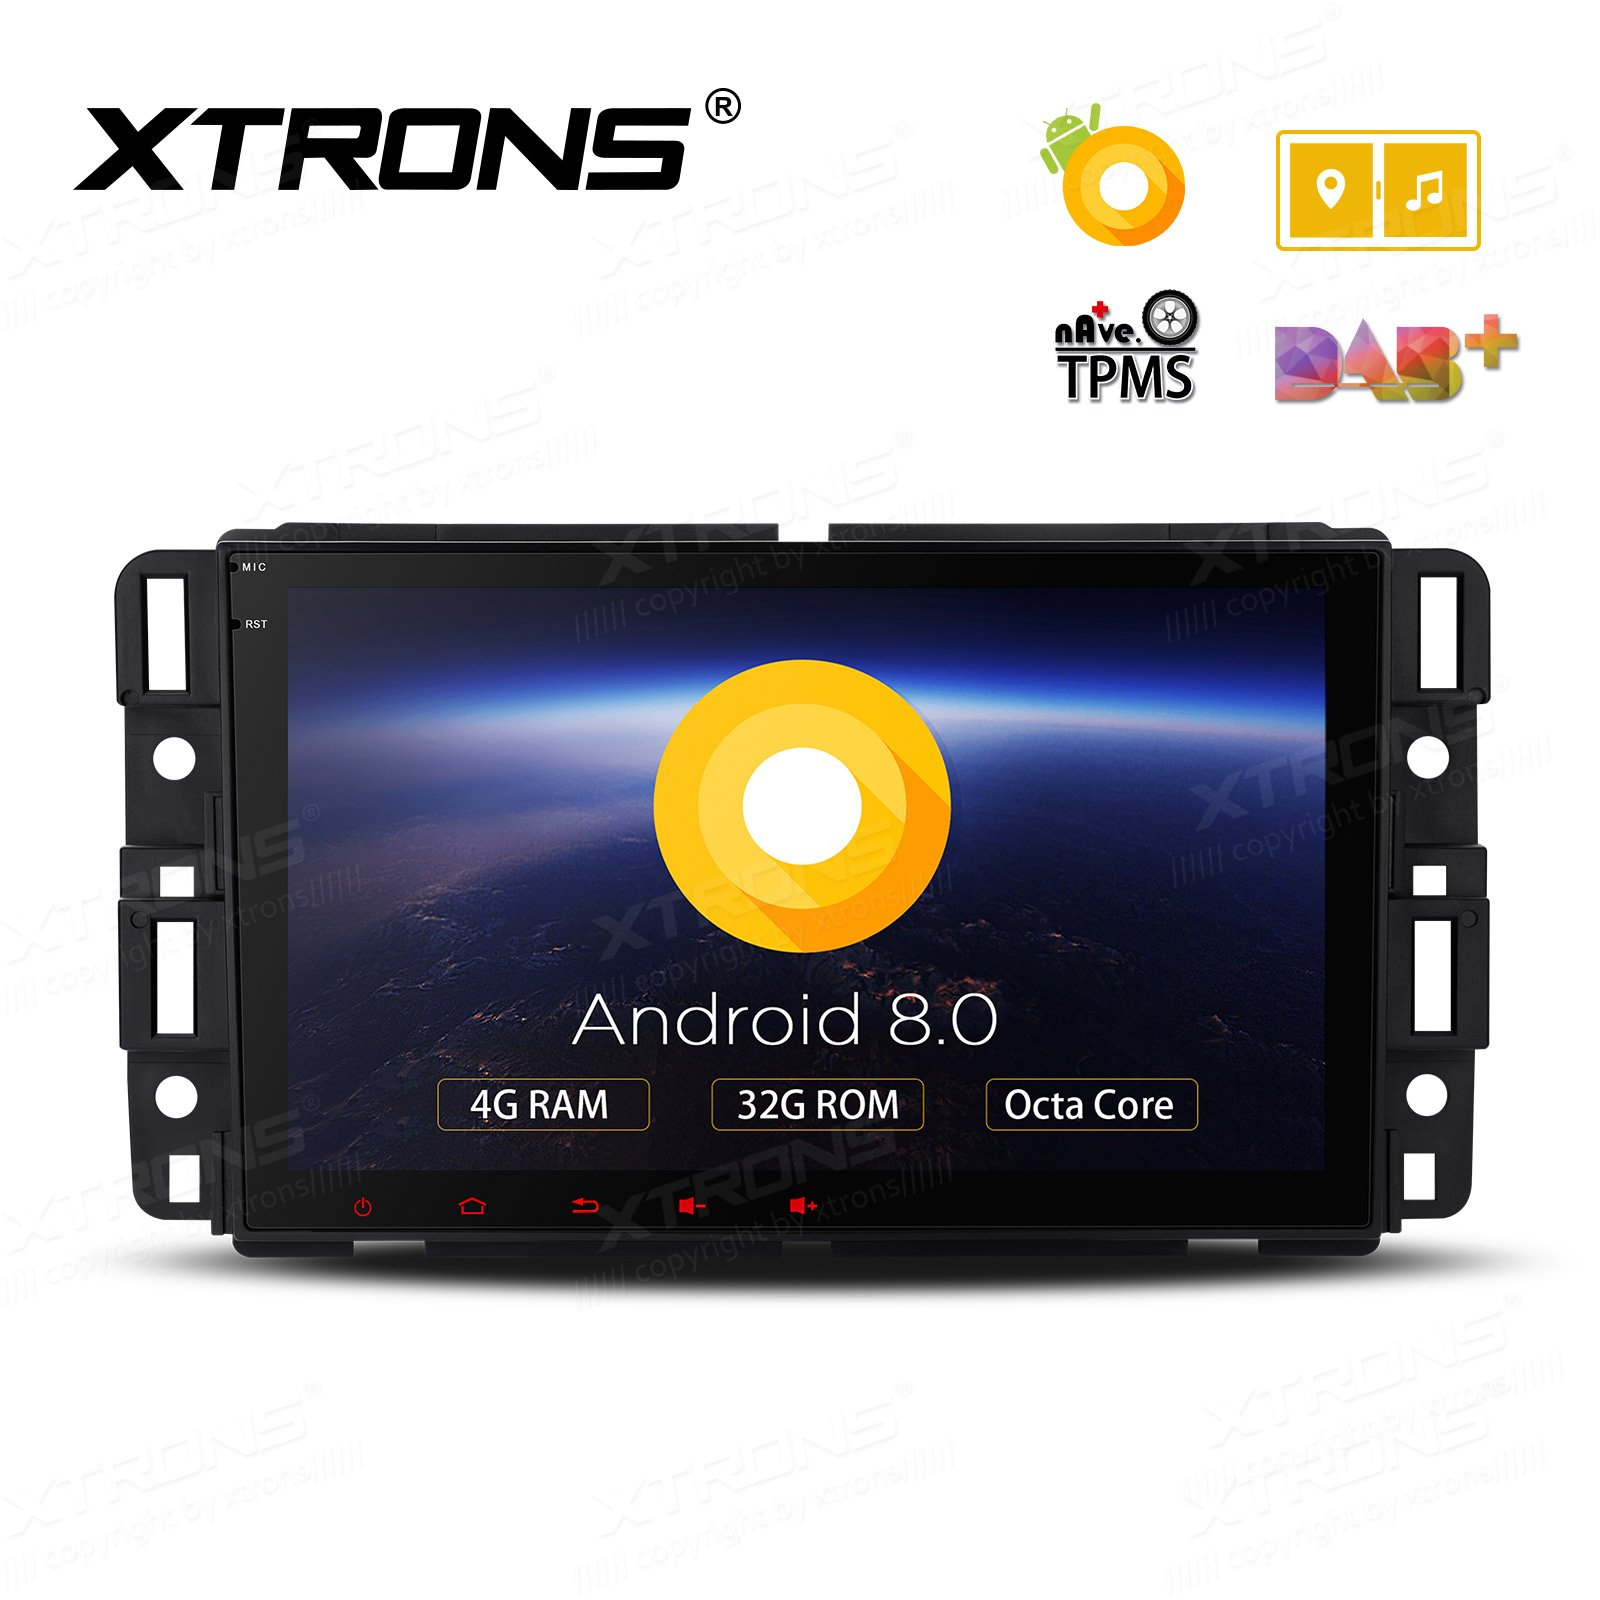 XTRONS 8 Inch Android 8.0 Octa Core 4G RAM 32G ROM Multi Touch Screen Car Stereo Player GPS DVR Wifi TPMS OBD2 for GMC Chevrolet Hummer